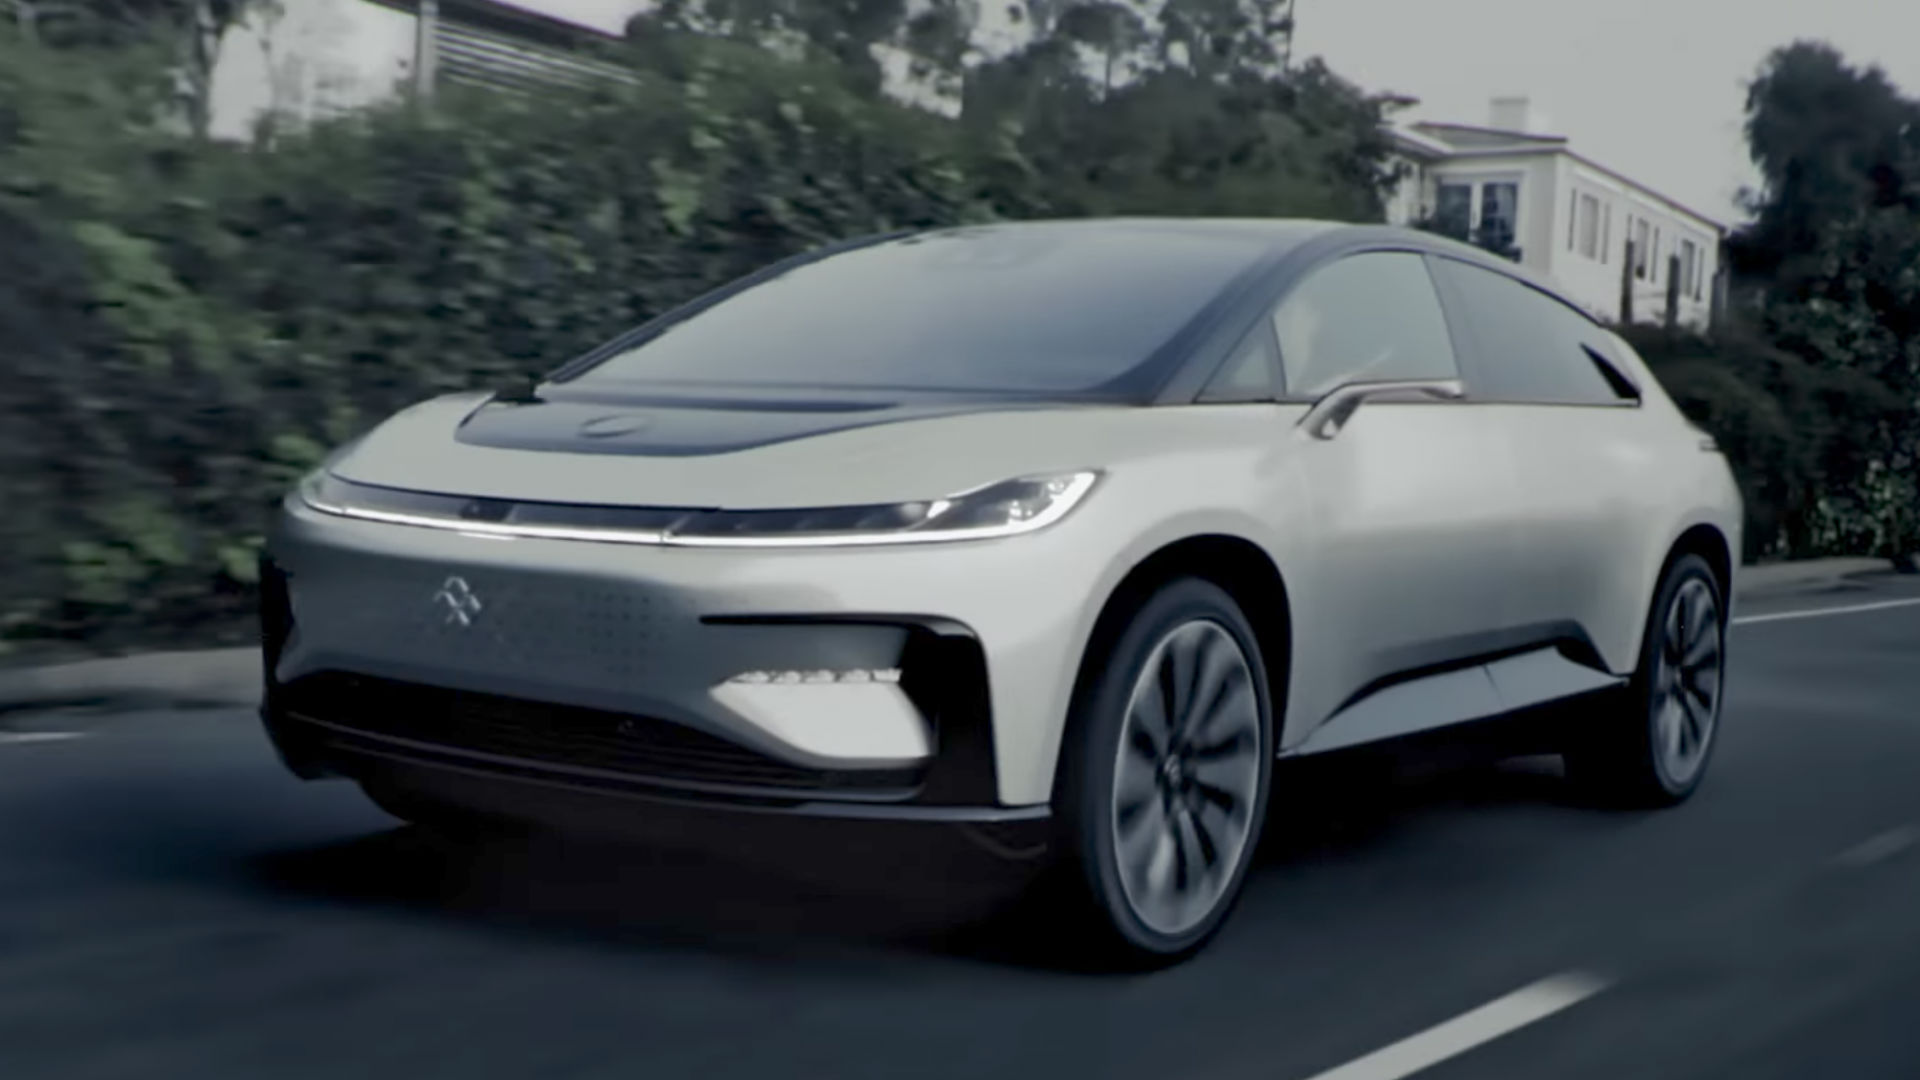 Get a good look at Faraday Future's supercar in new video